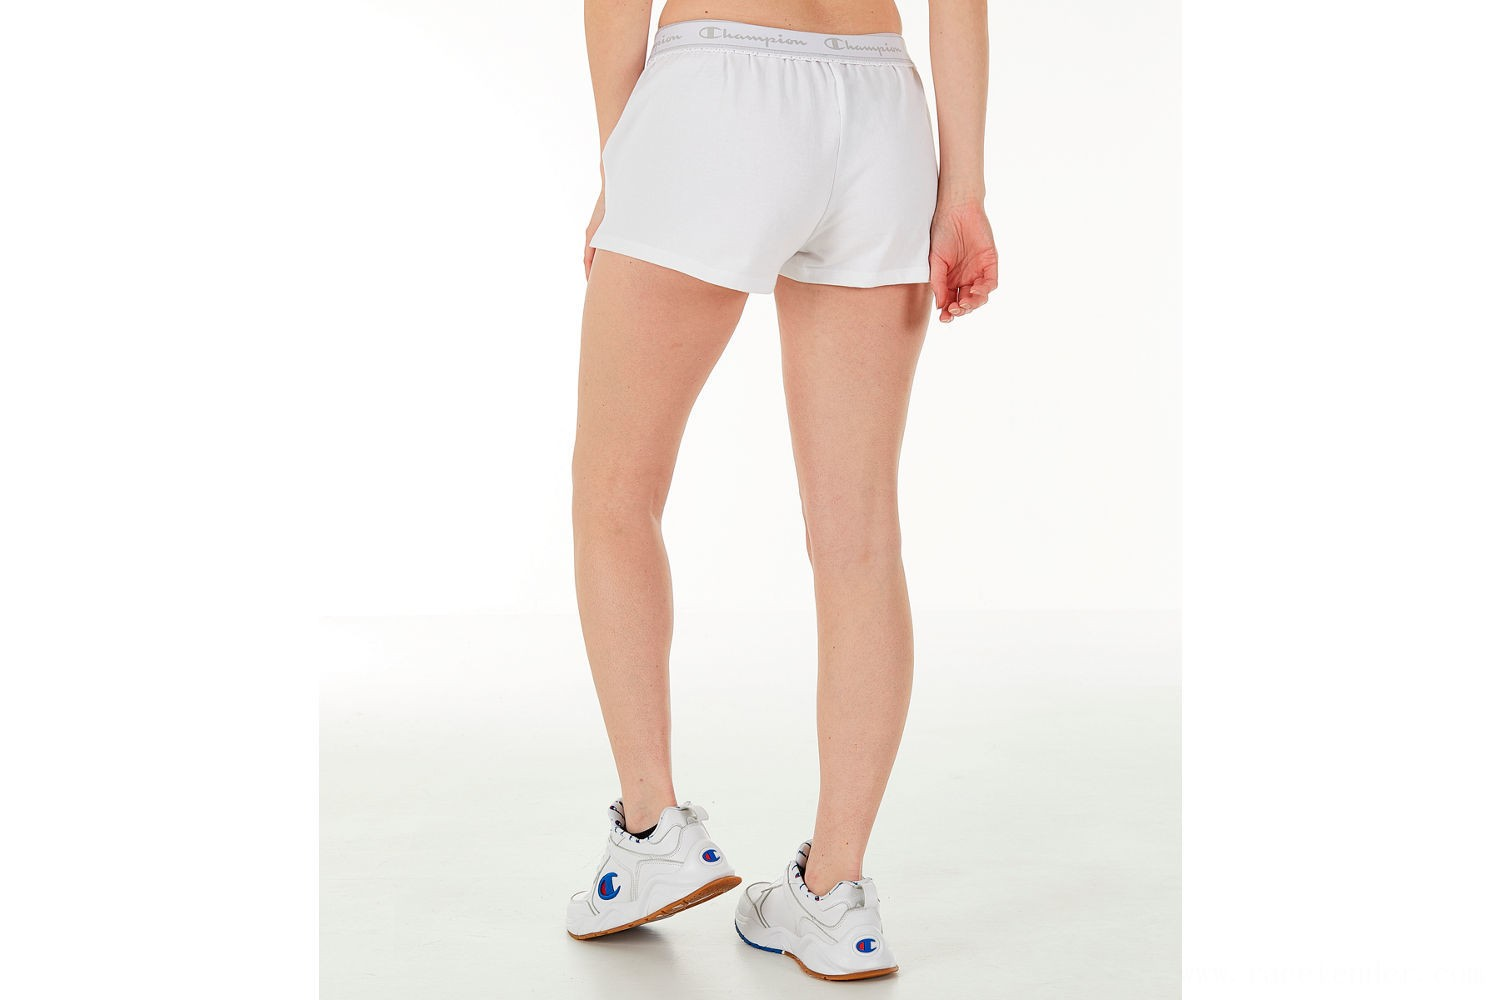 Champion Women's Practice Shorts - White